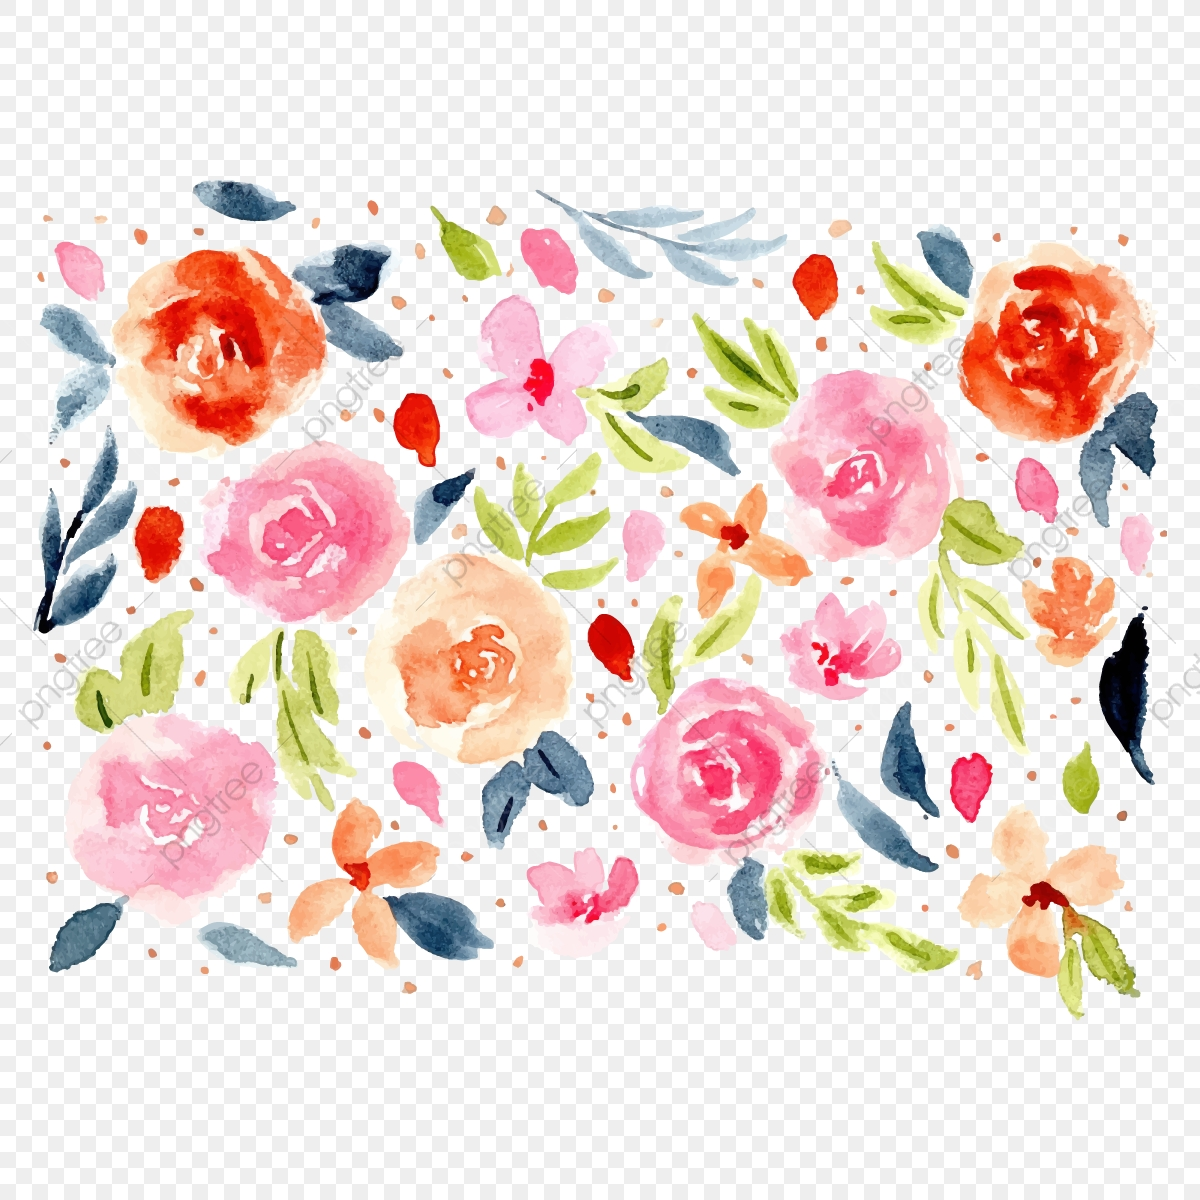 Sweet Floral Watercolor Background Floral Flower Leaves Png And